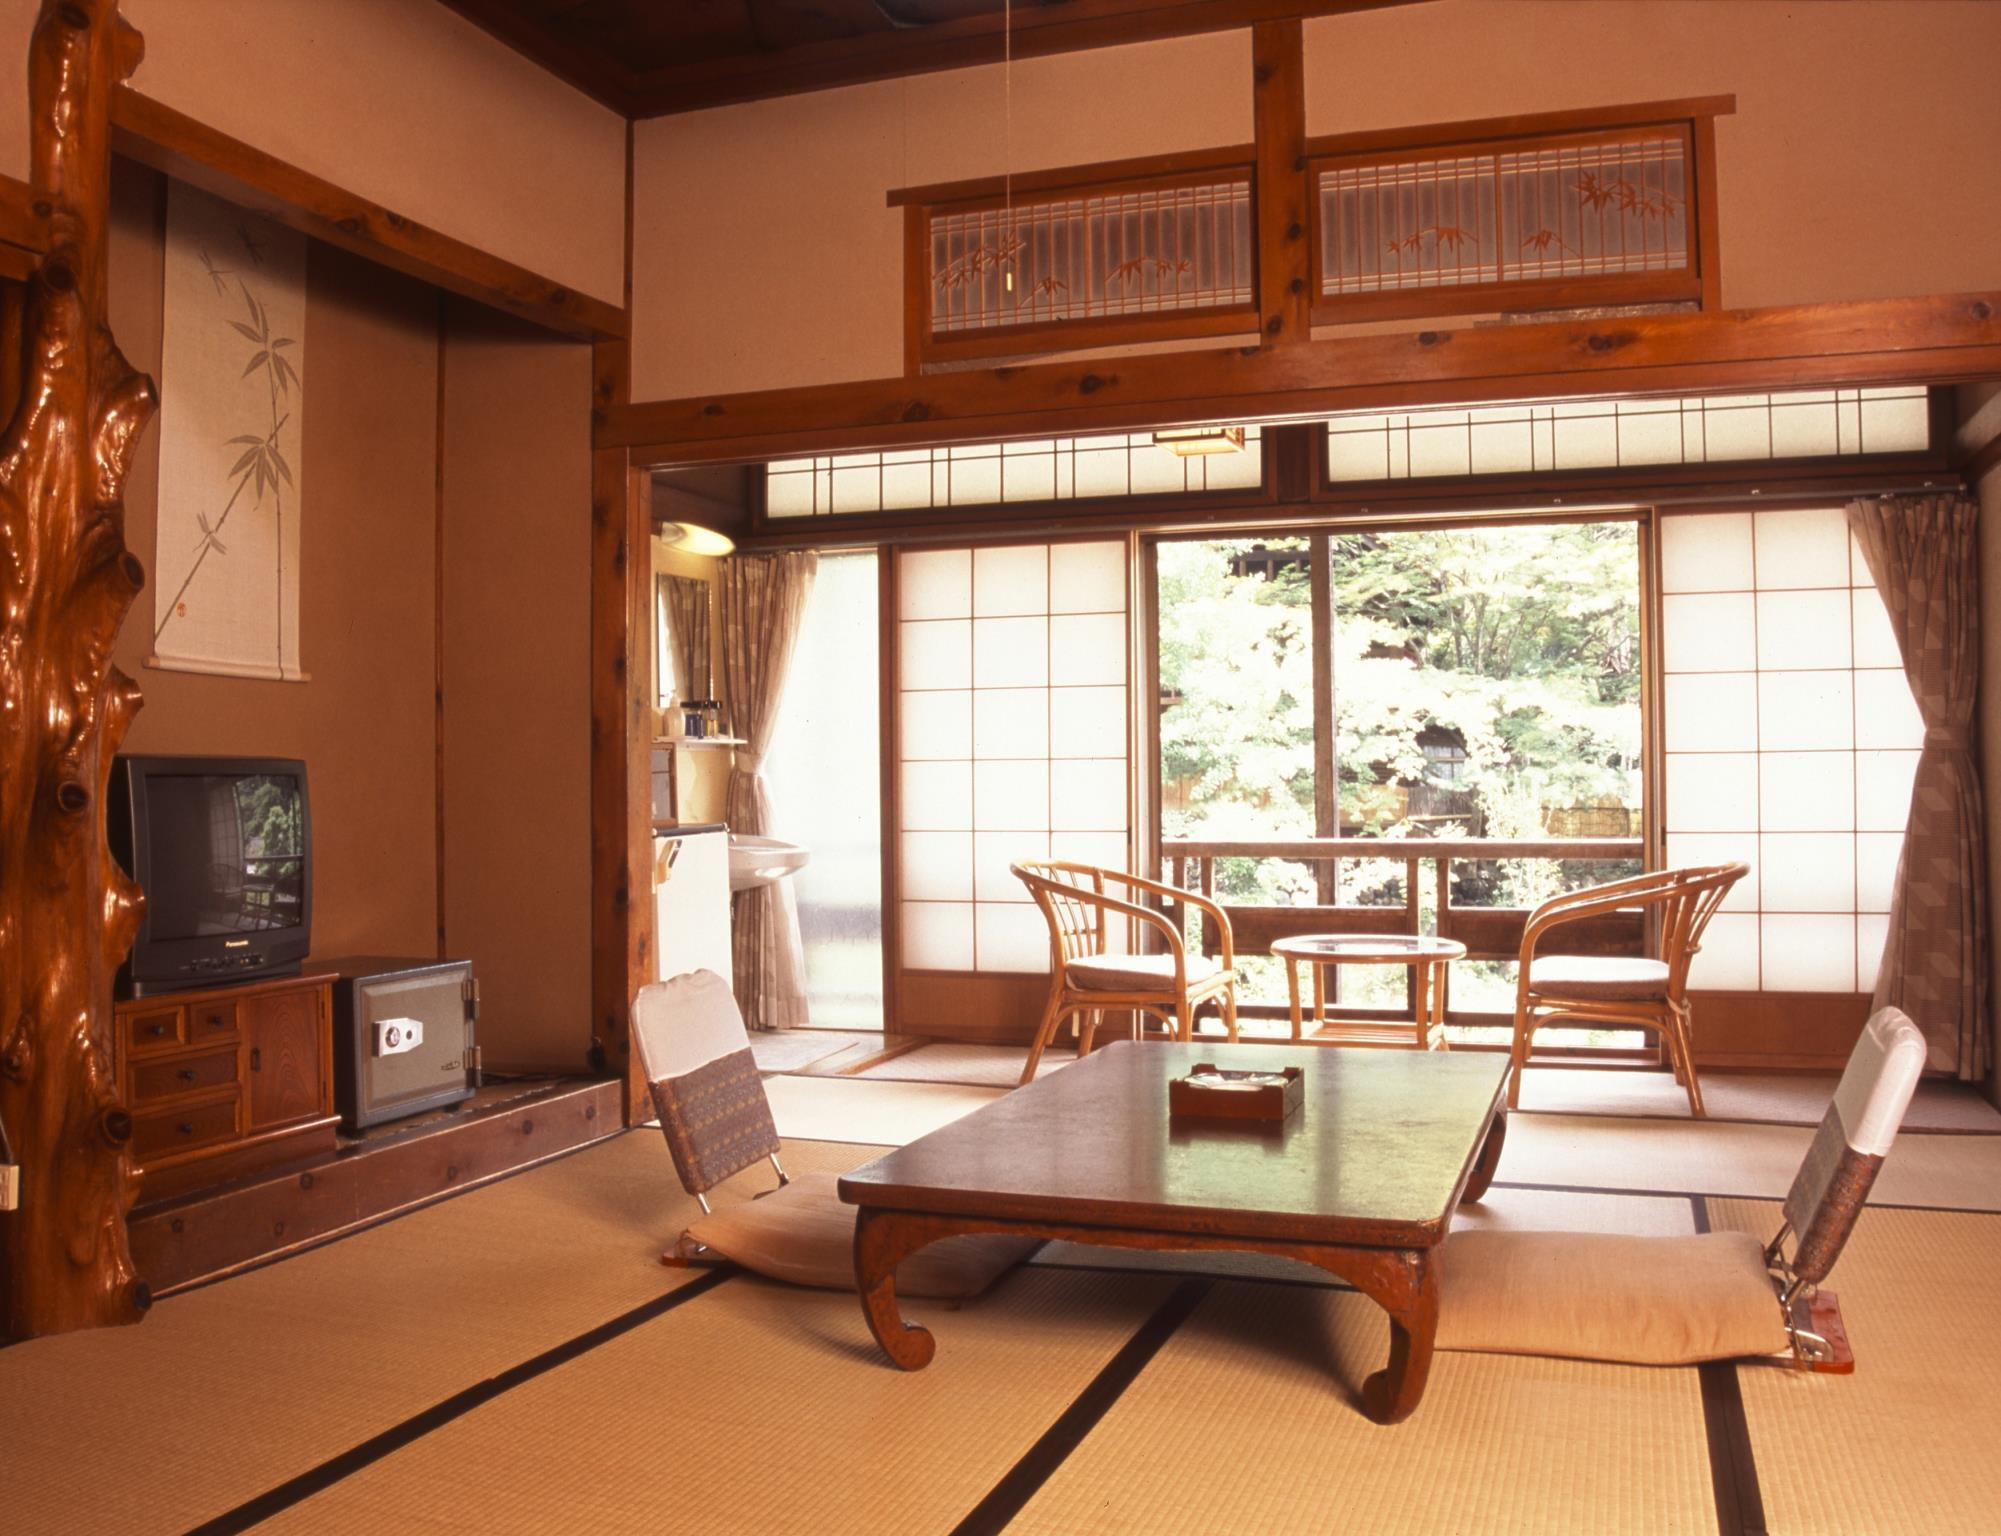 Japanese Style Annex with Shared Bathroom